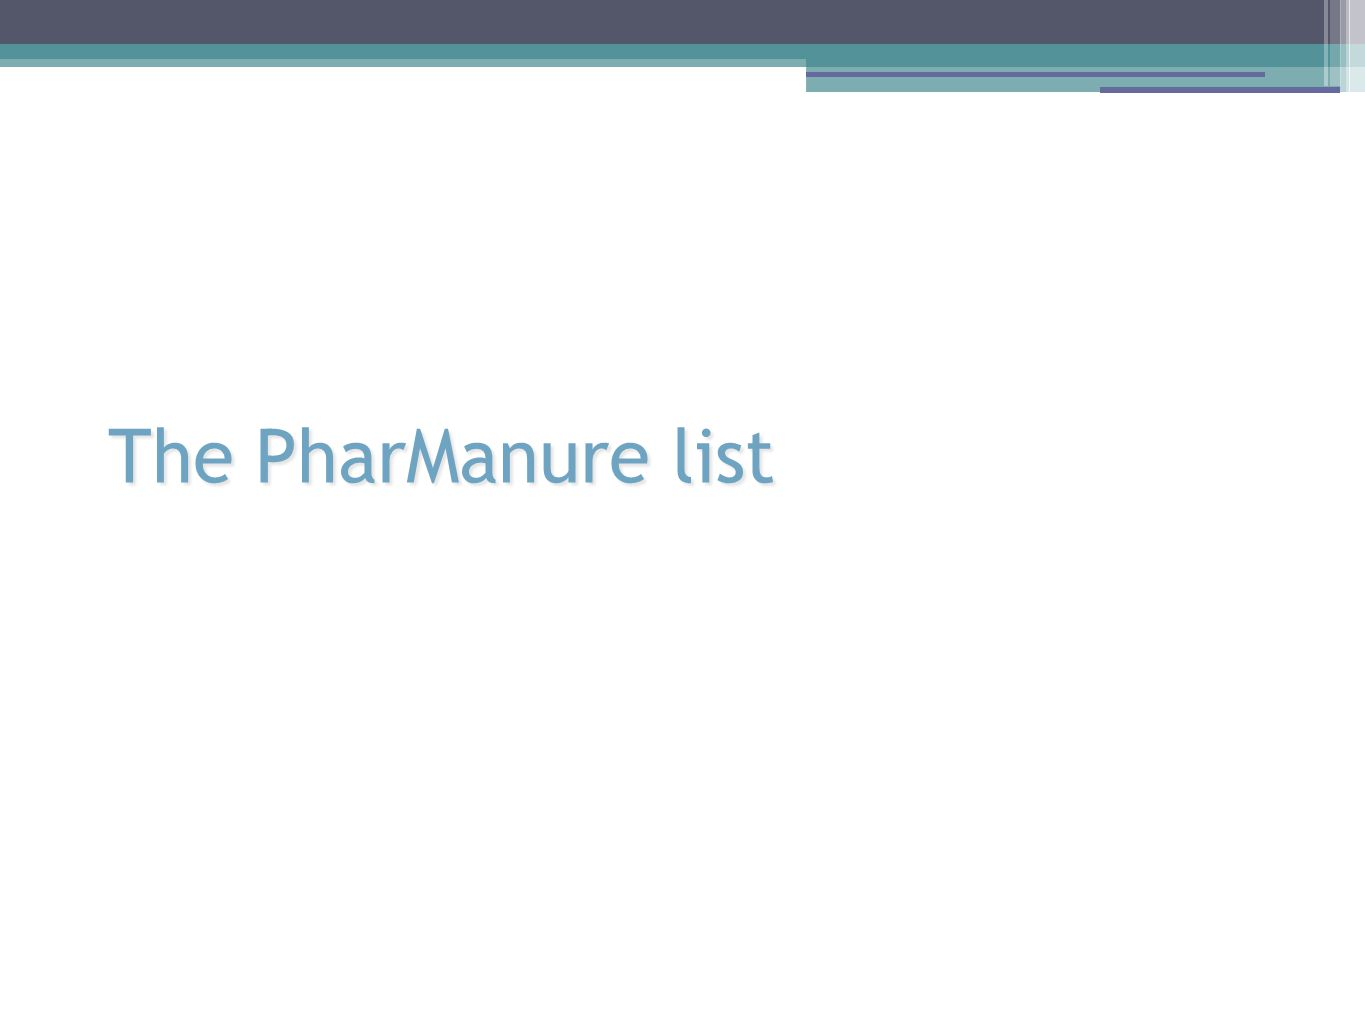 The PharManure list